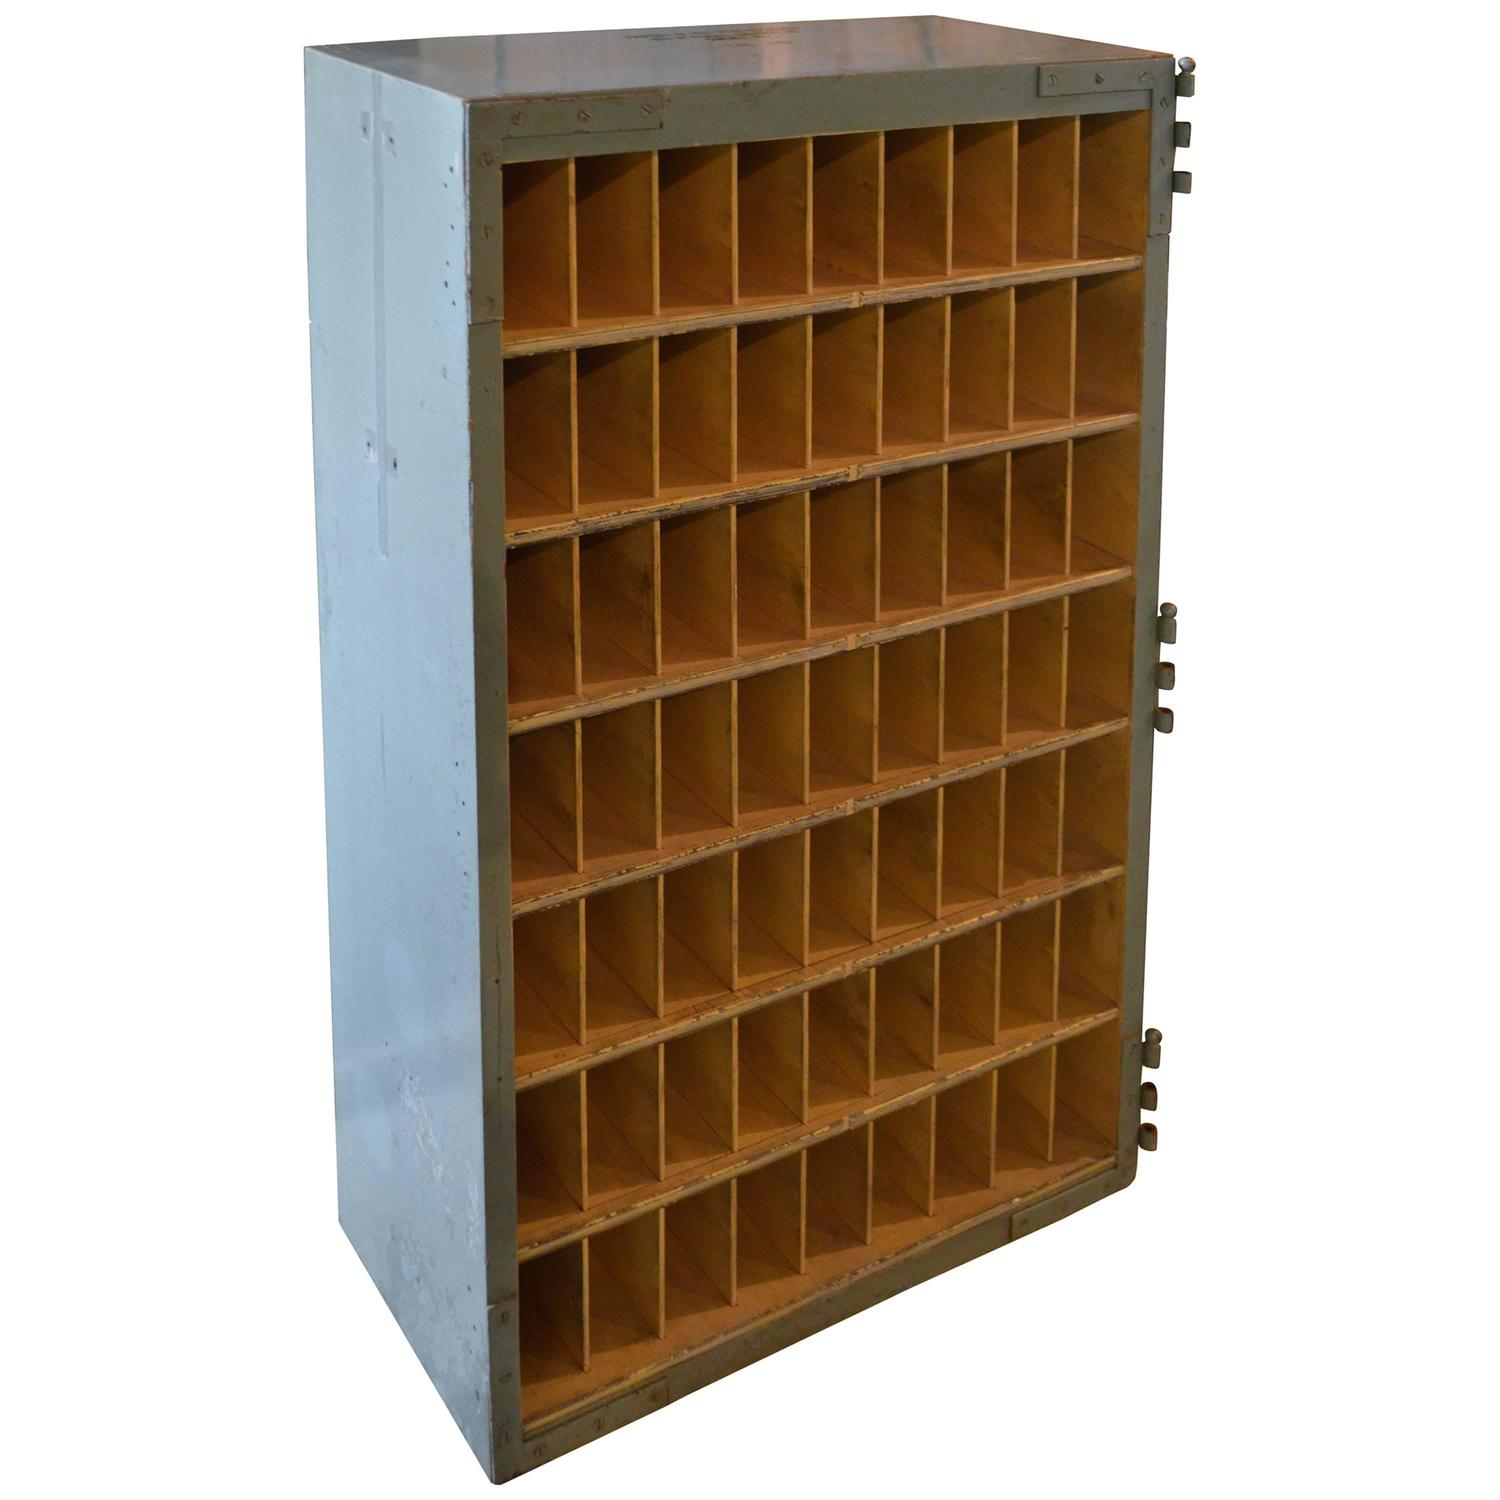 Us Cabinet: Cabinet Used To Slot Mail, US Postal Service, 1957 For